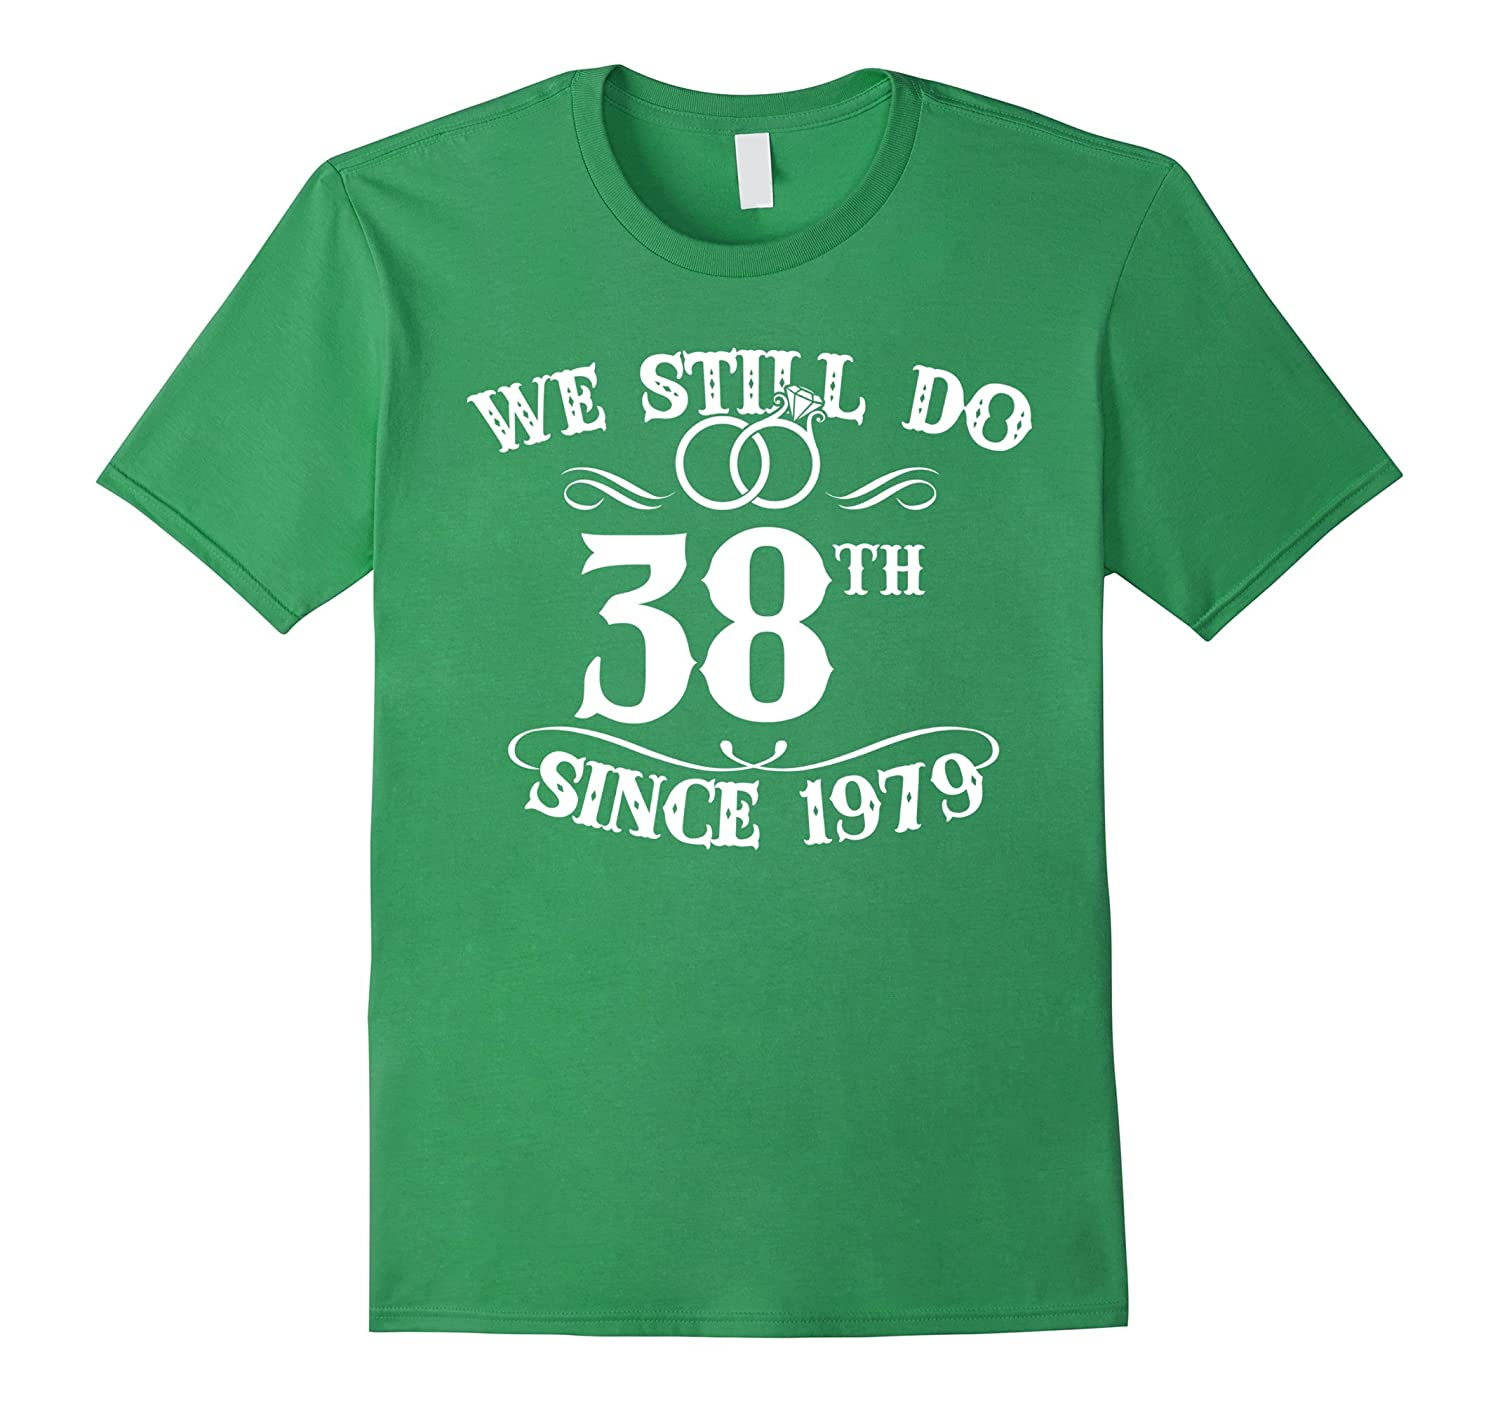 38th Wedding Anniversary Gifts For Women/Men. Couple Shirts-CL  sc 1 st  Colamaga & 38th Wedding Anniversary Gifts For Women/Men. Couple Shirts-CL ...